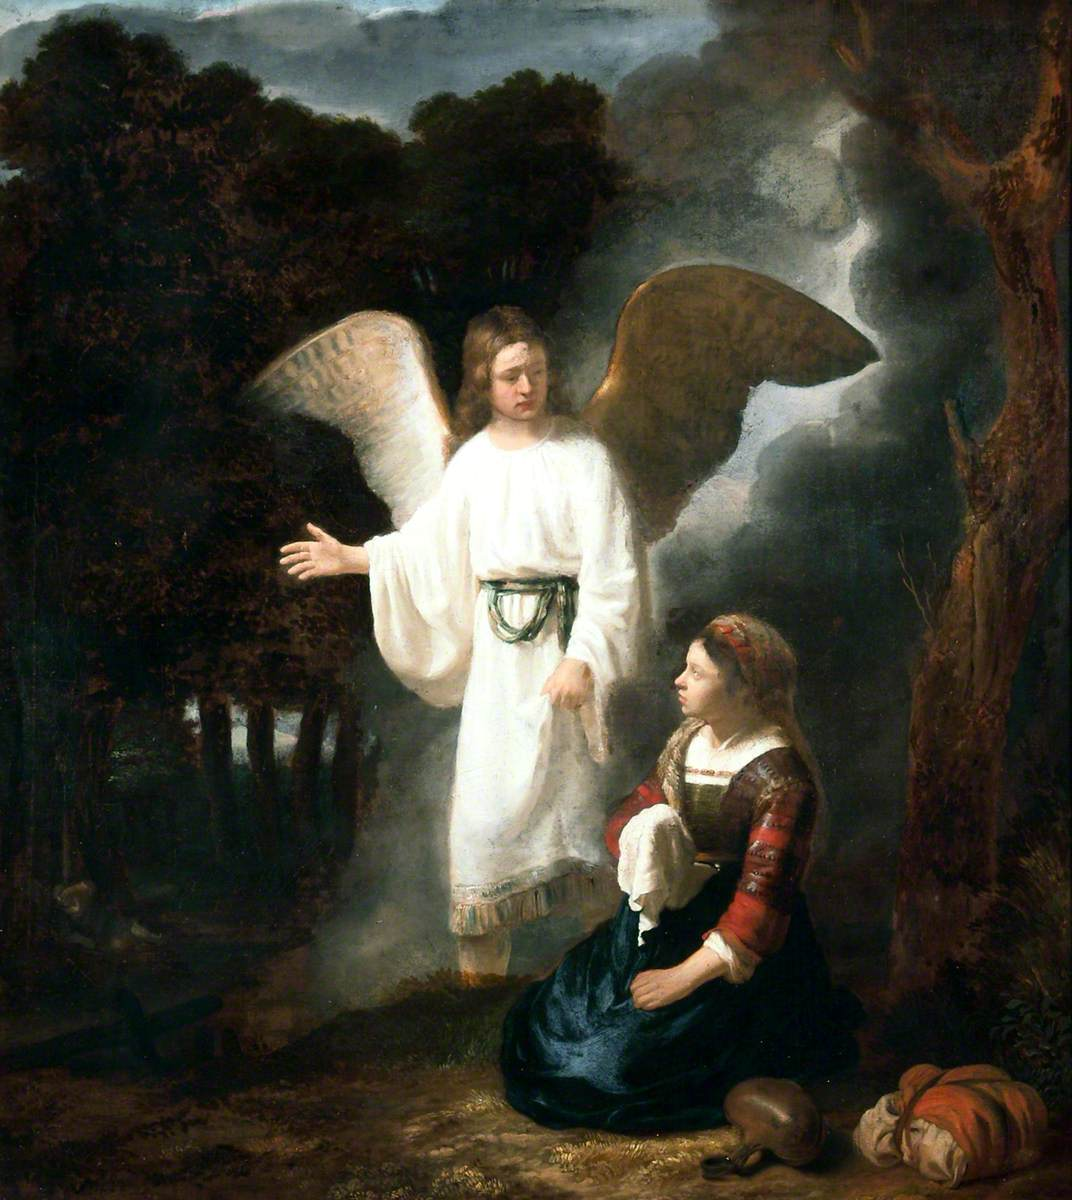 The Angel Appearing to Hagar